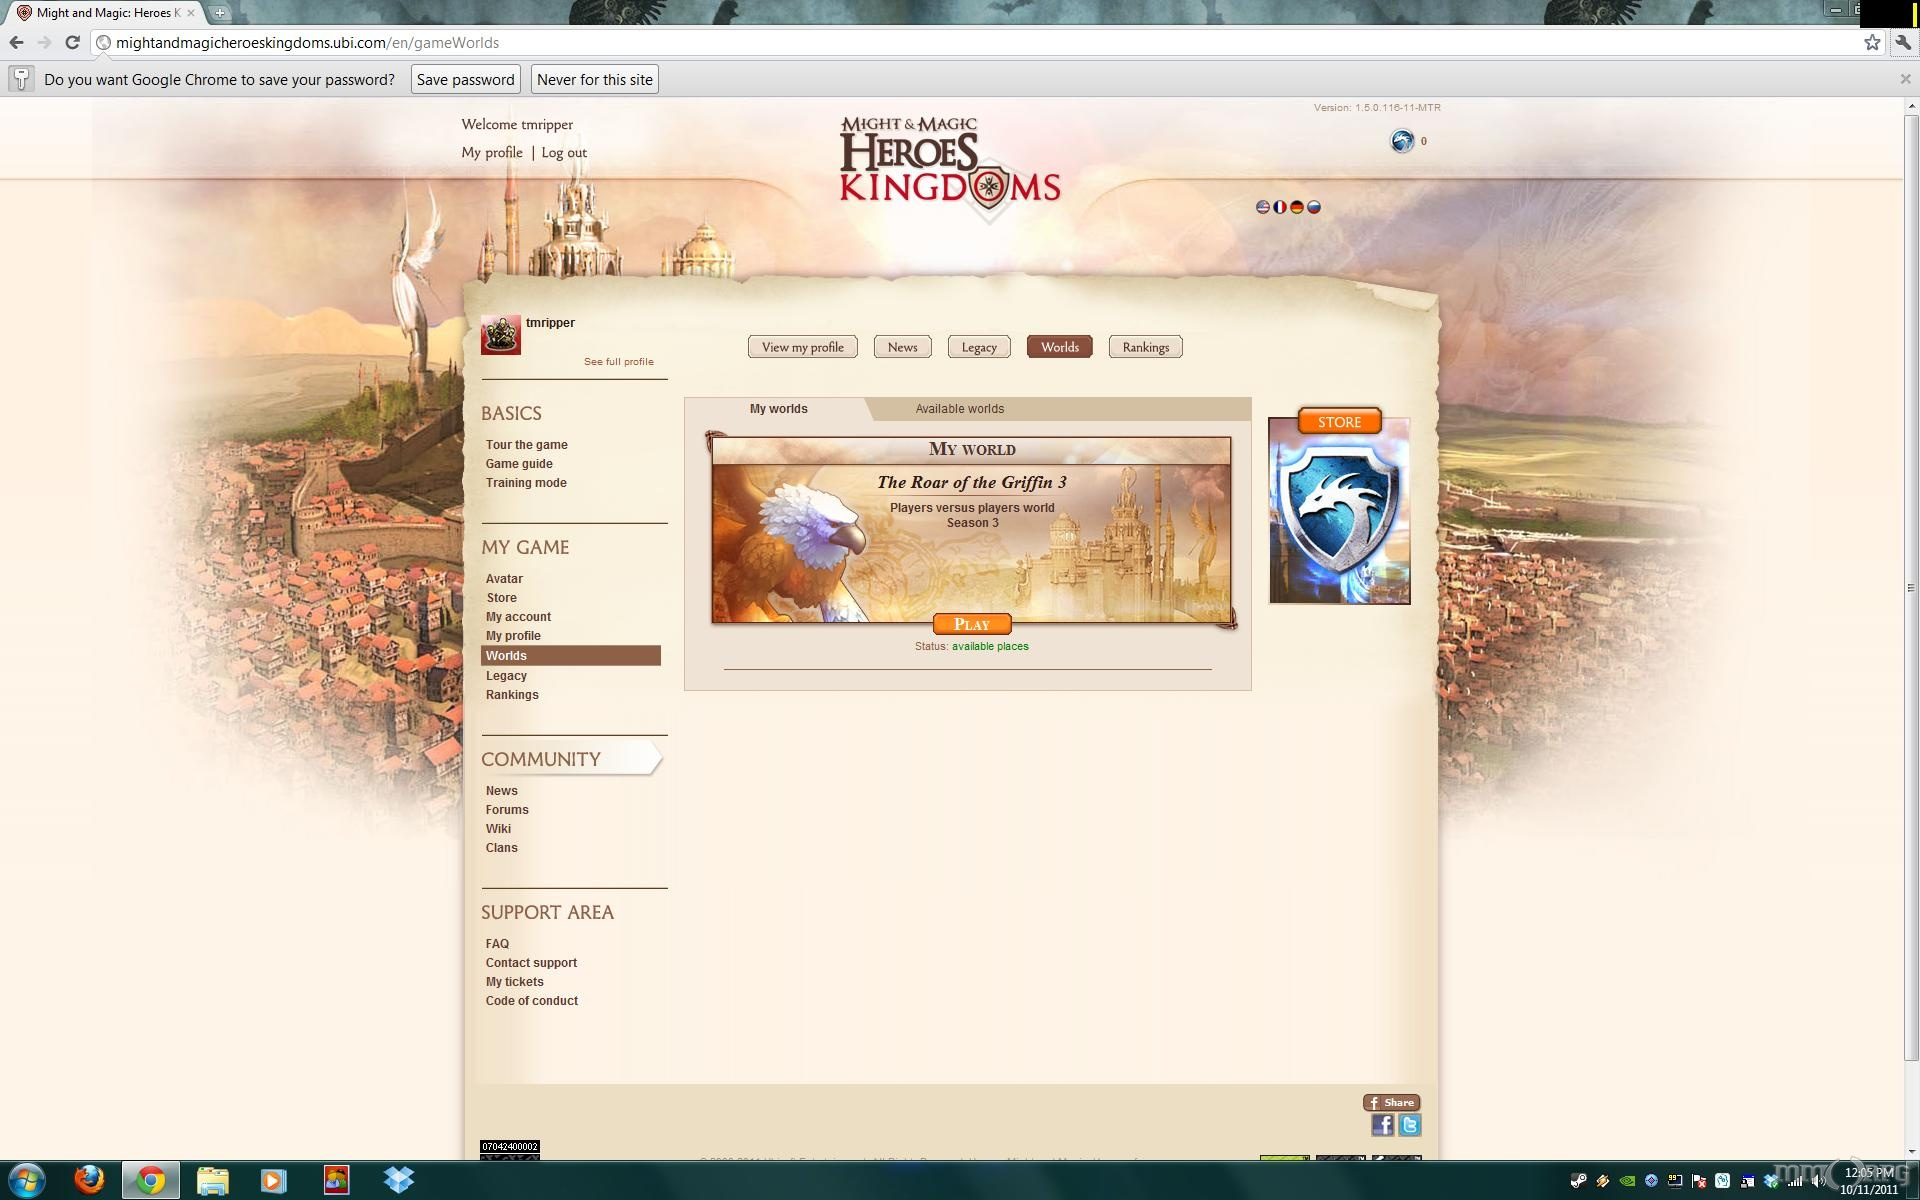 Might & Magic Heroes: Kingdoms